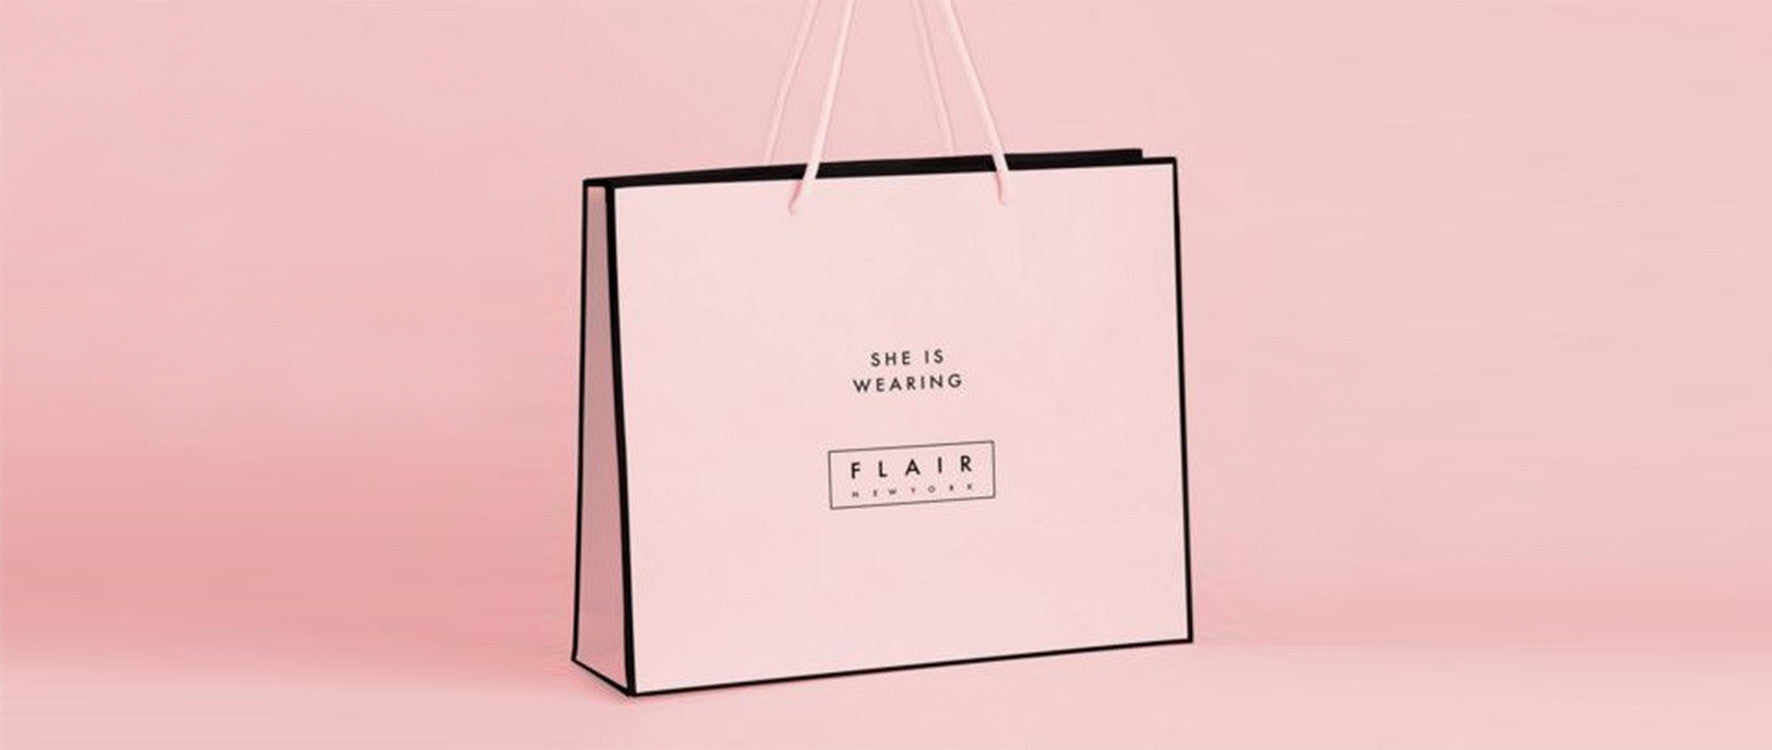 Top 10: The Best Shopping Bag Designs Of 2015